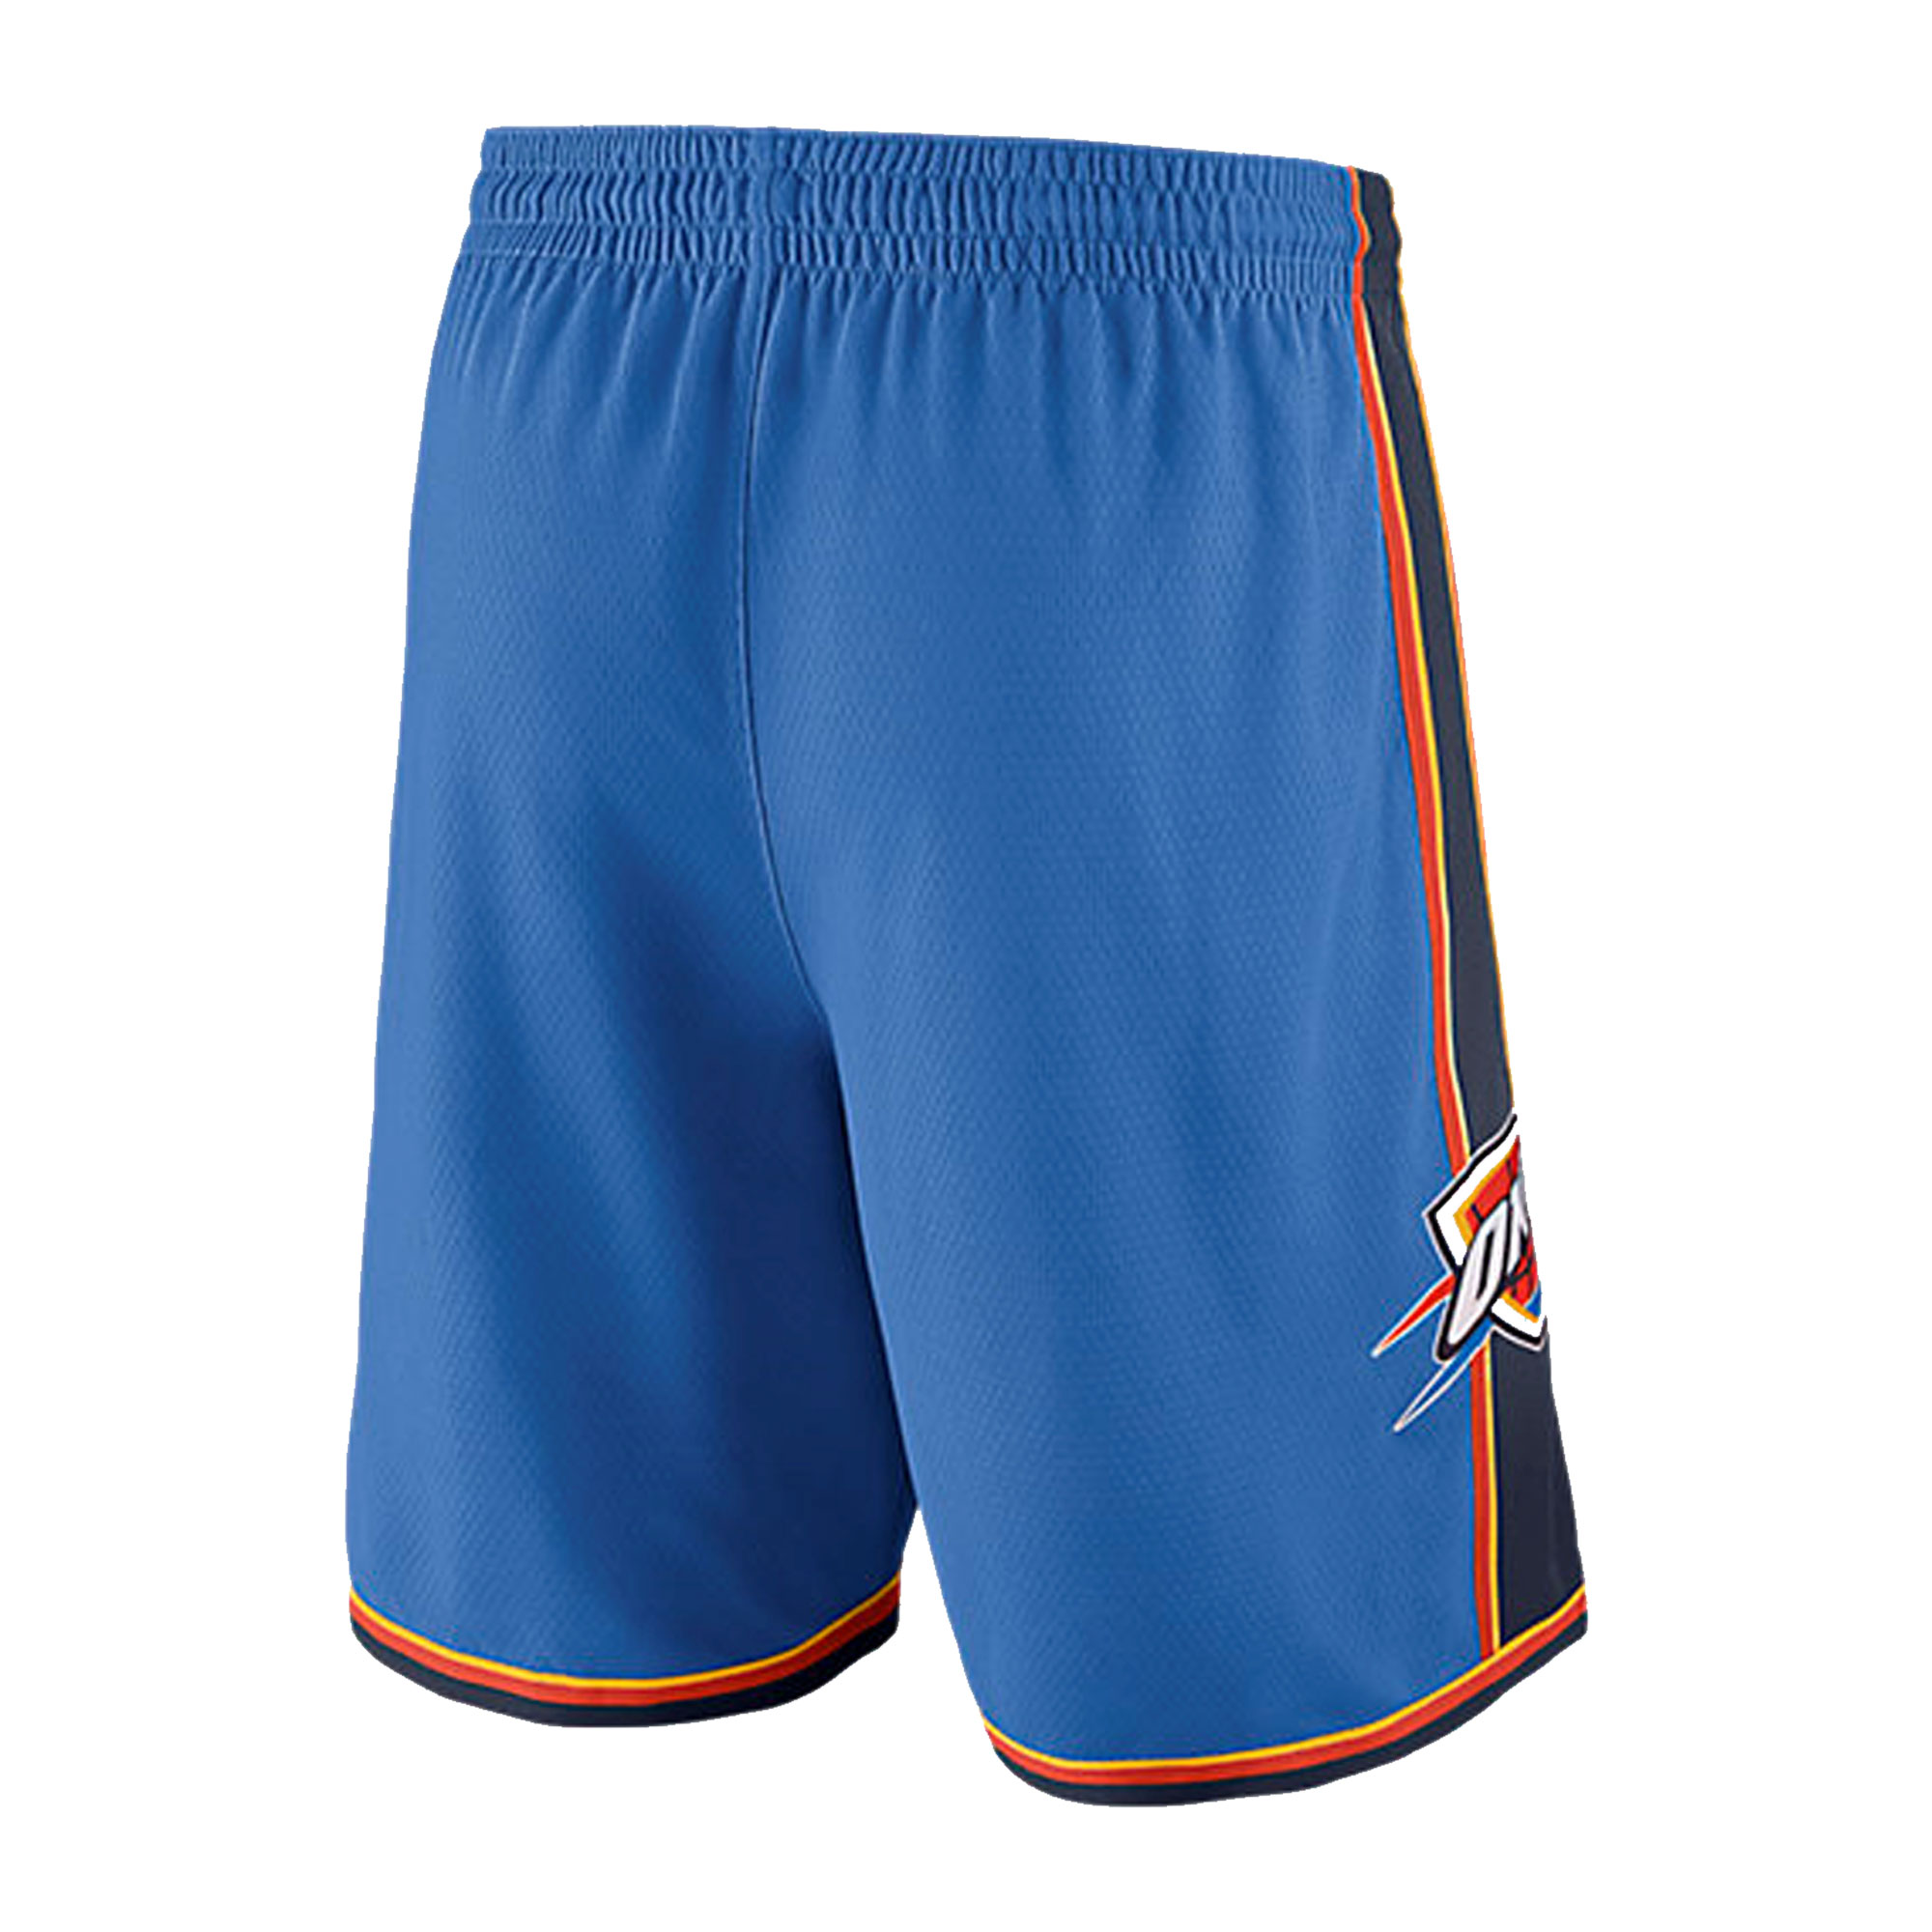 Oklahoma City  Short (SRT-BLU-OKC2)